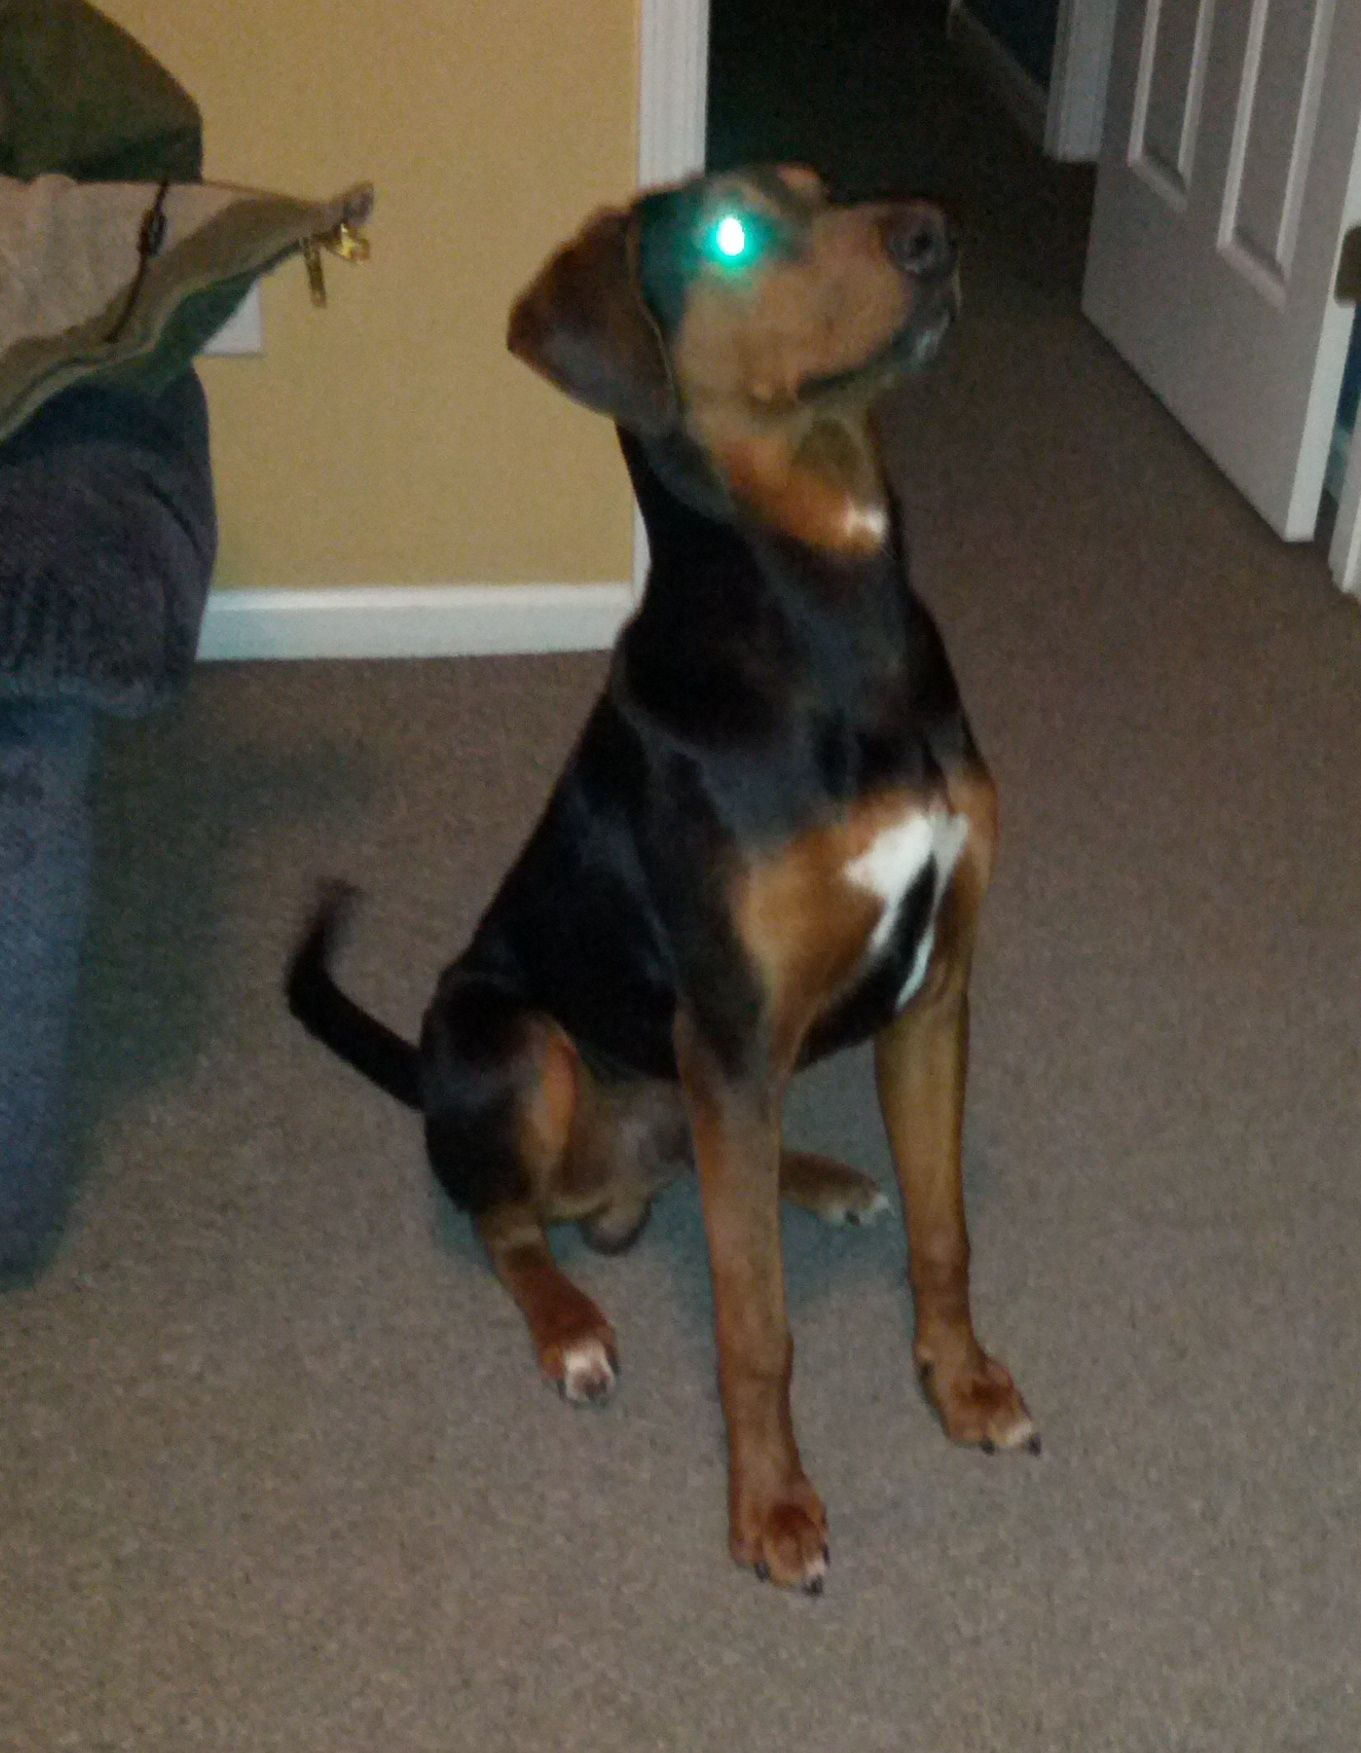 #FOUNDDOG 1-9-14 Stray#Summerville #SC Purebred Black and Tan #Coonhound Intact Male 1-3 Years Old 21-50 LBS Black & Tan White Markings Two Brown Eyes Short Hair Ears Natural Tail Natural Tongue Pink Muzzle Tan Nose Black FinderDawn Claytonmdb8888@hotmail.com USLDR